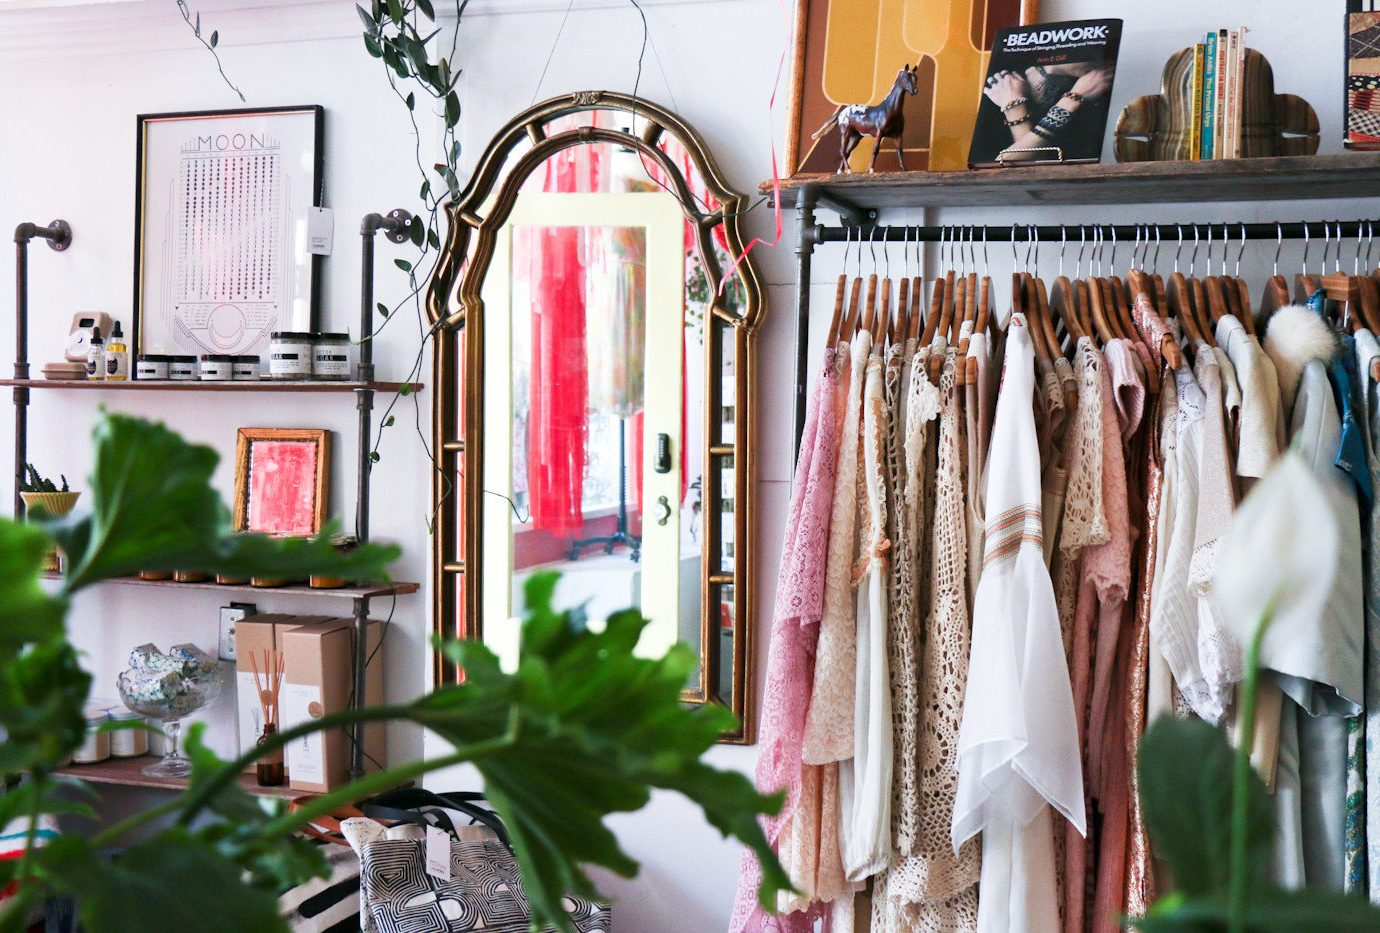 apparel artistic artsy Boutique clothes clothing Hip hipster interior mirror Offbeat Shop shopping store Style + Design trendy indoor room retail floristry home interior design furniture different decorated arranged several